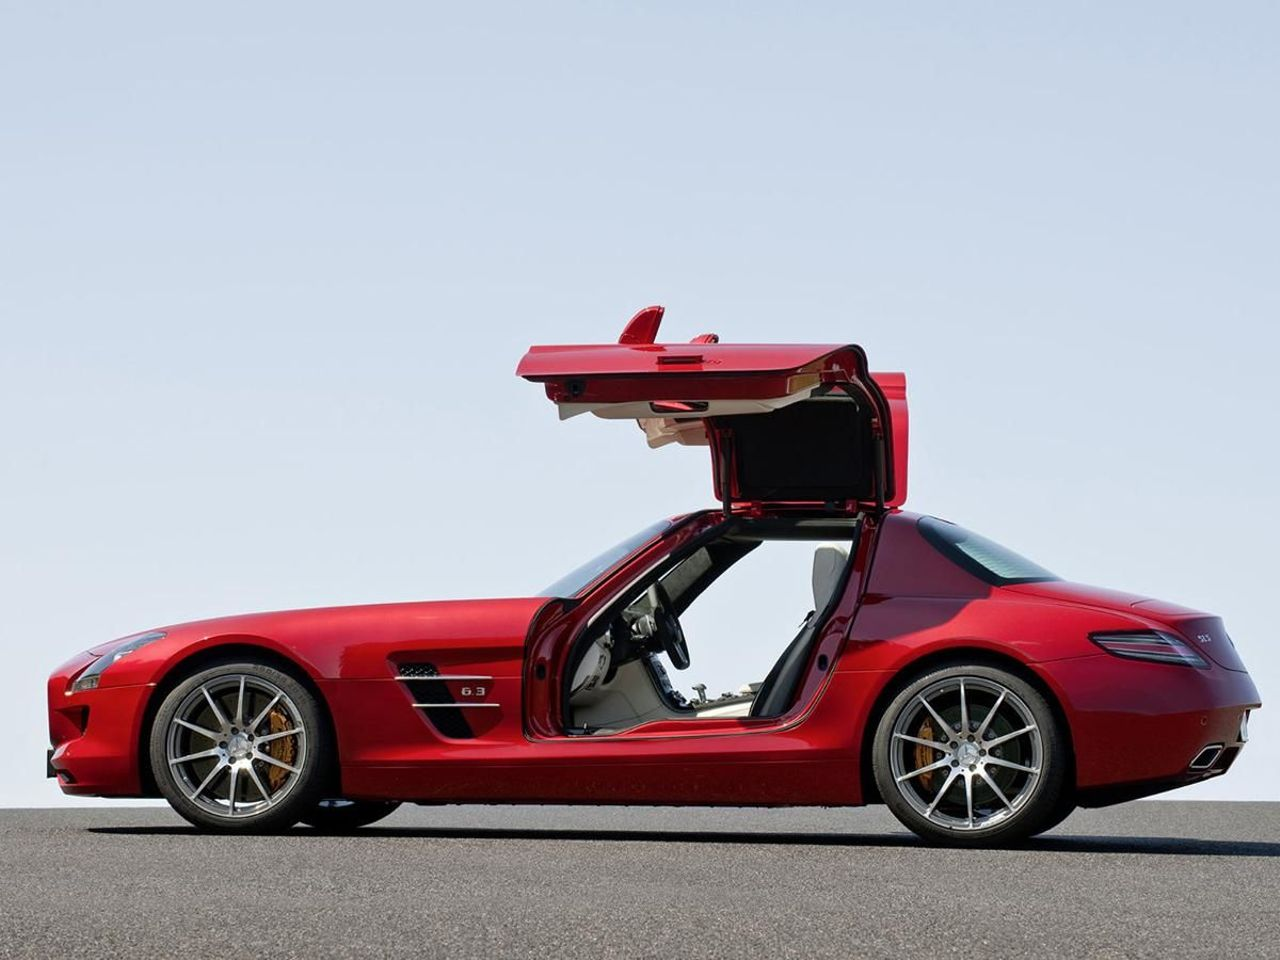 Mercedes SLS AMG coupe